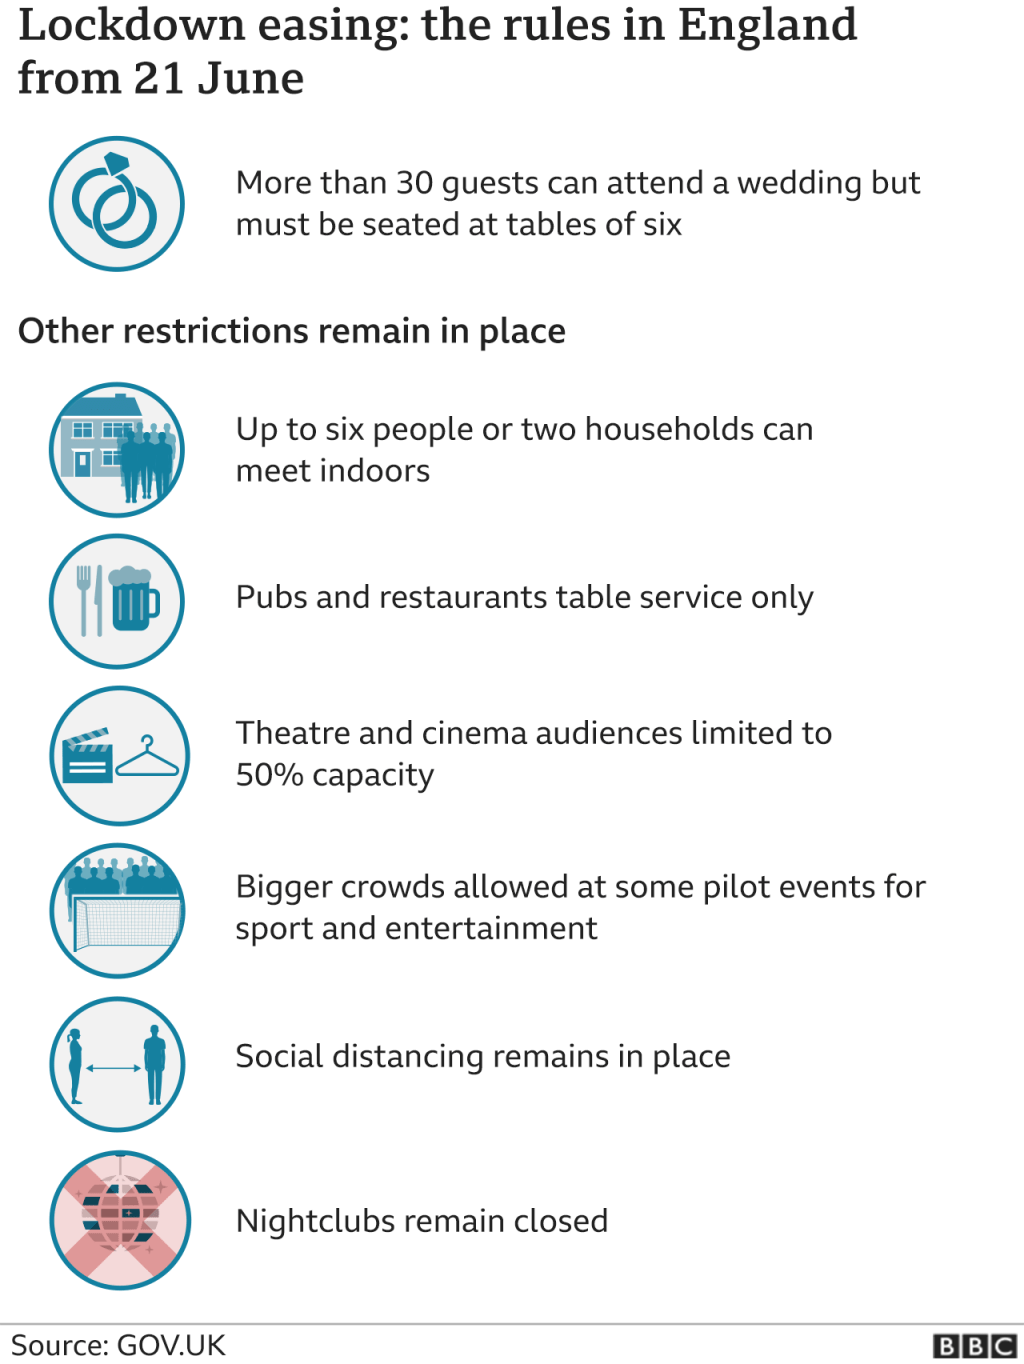 Lockdown rules after 21 June in England